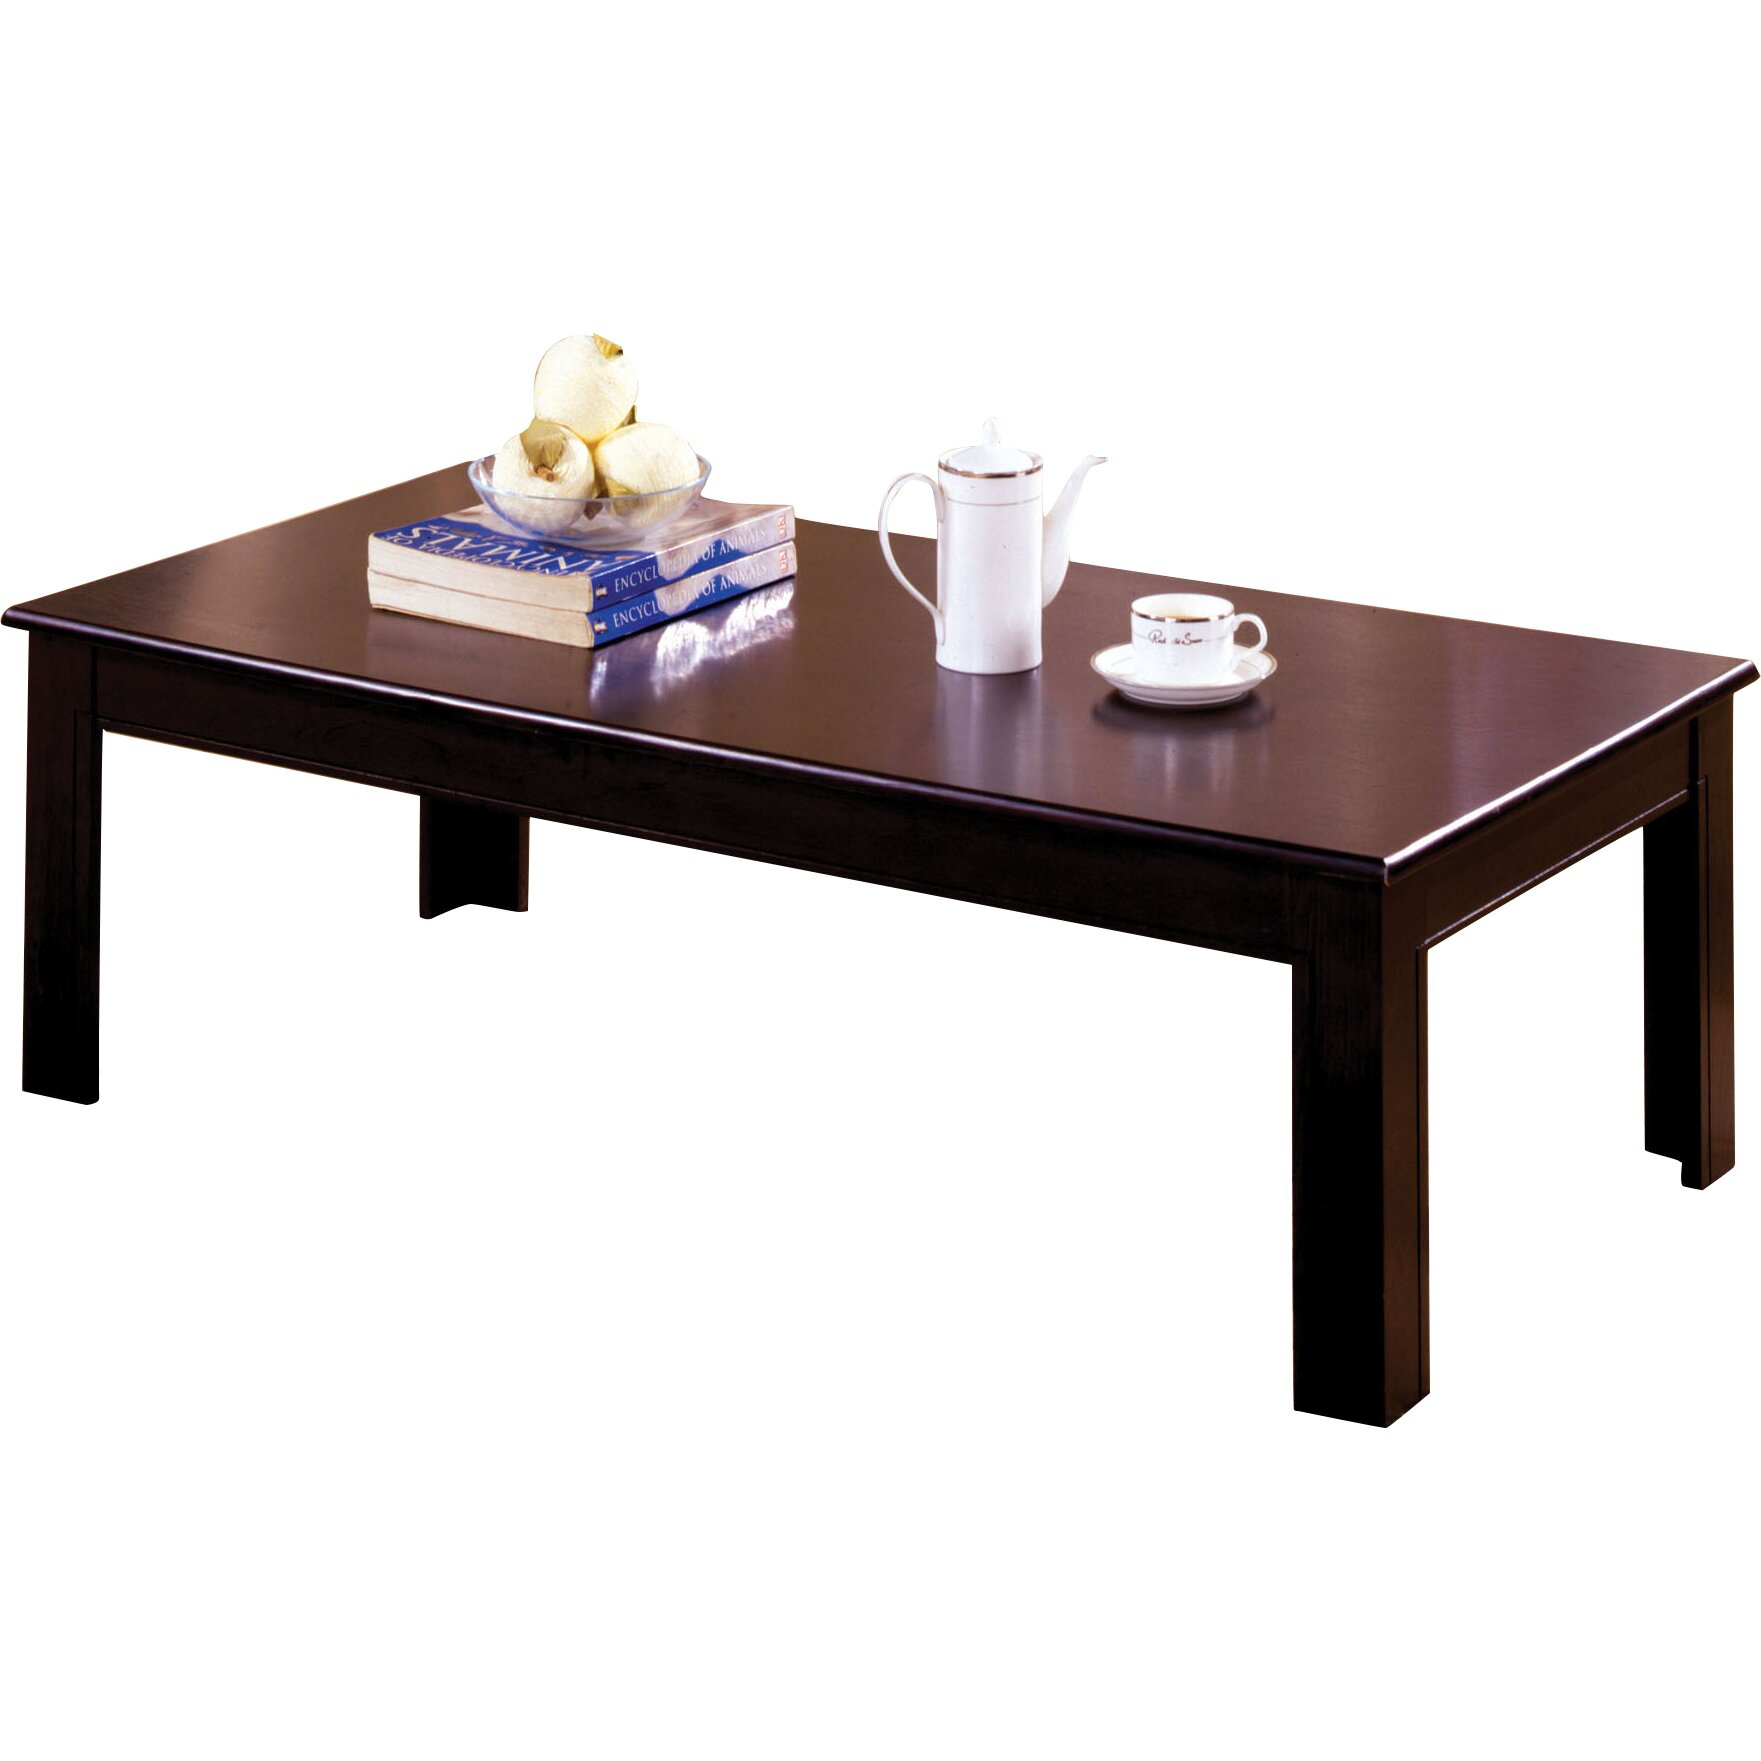 Hokku Designs Frixe 3 Piece Coffee Table Set Reviews